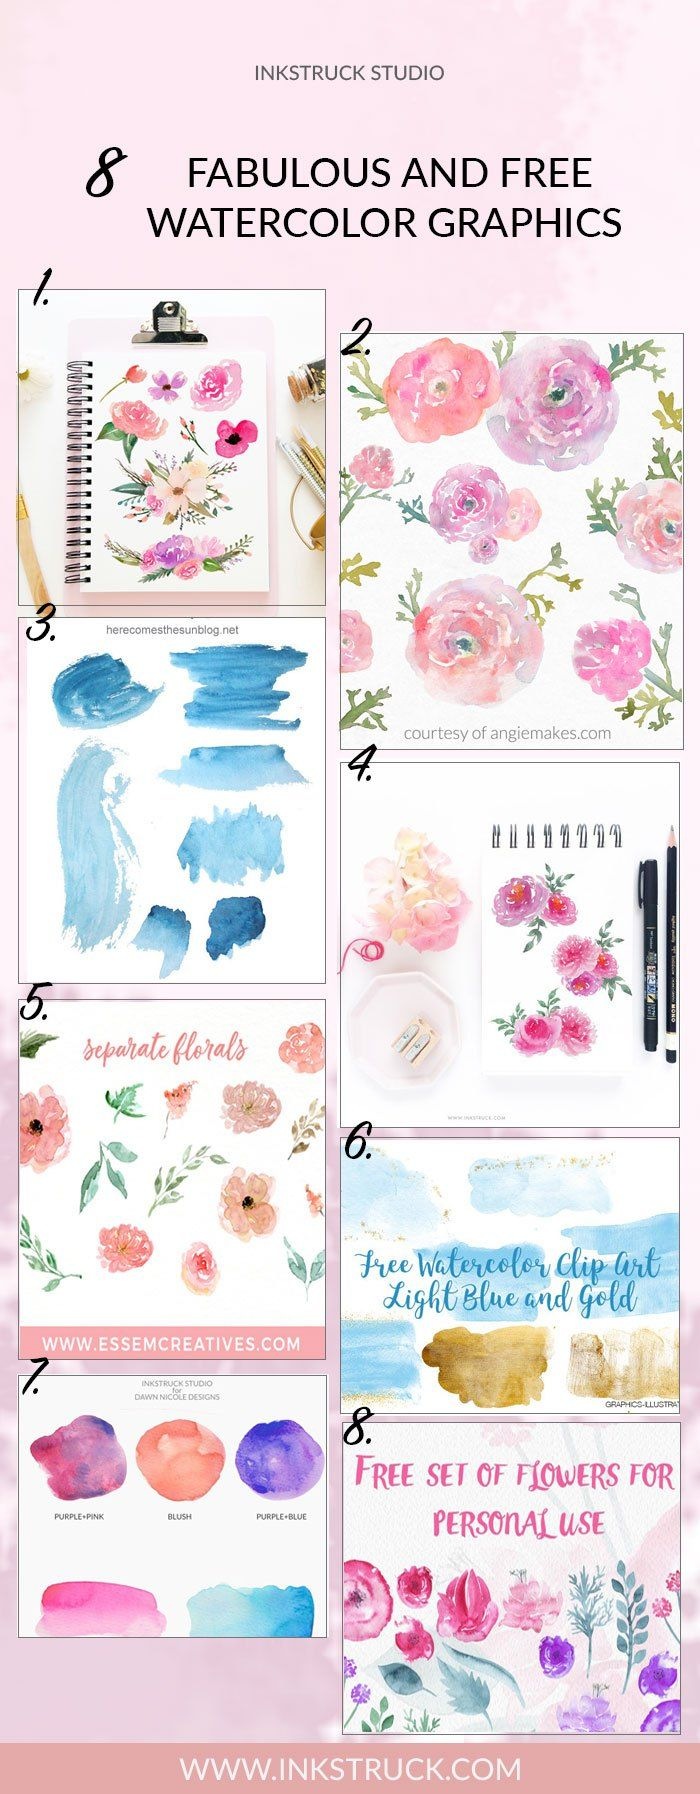 Free Watercolor Floral Clip Art Free Watercolor Flowers Floral